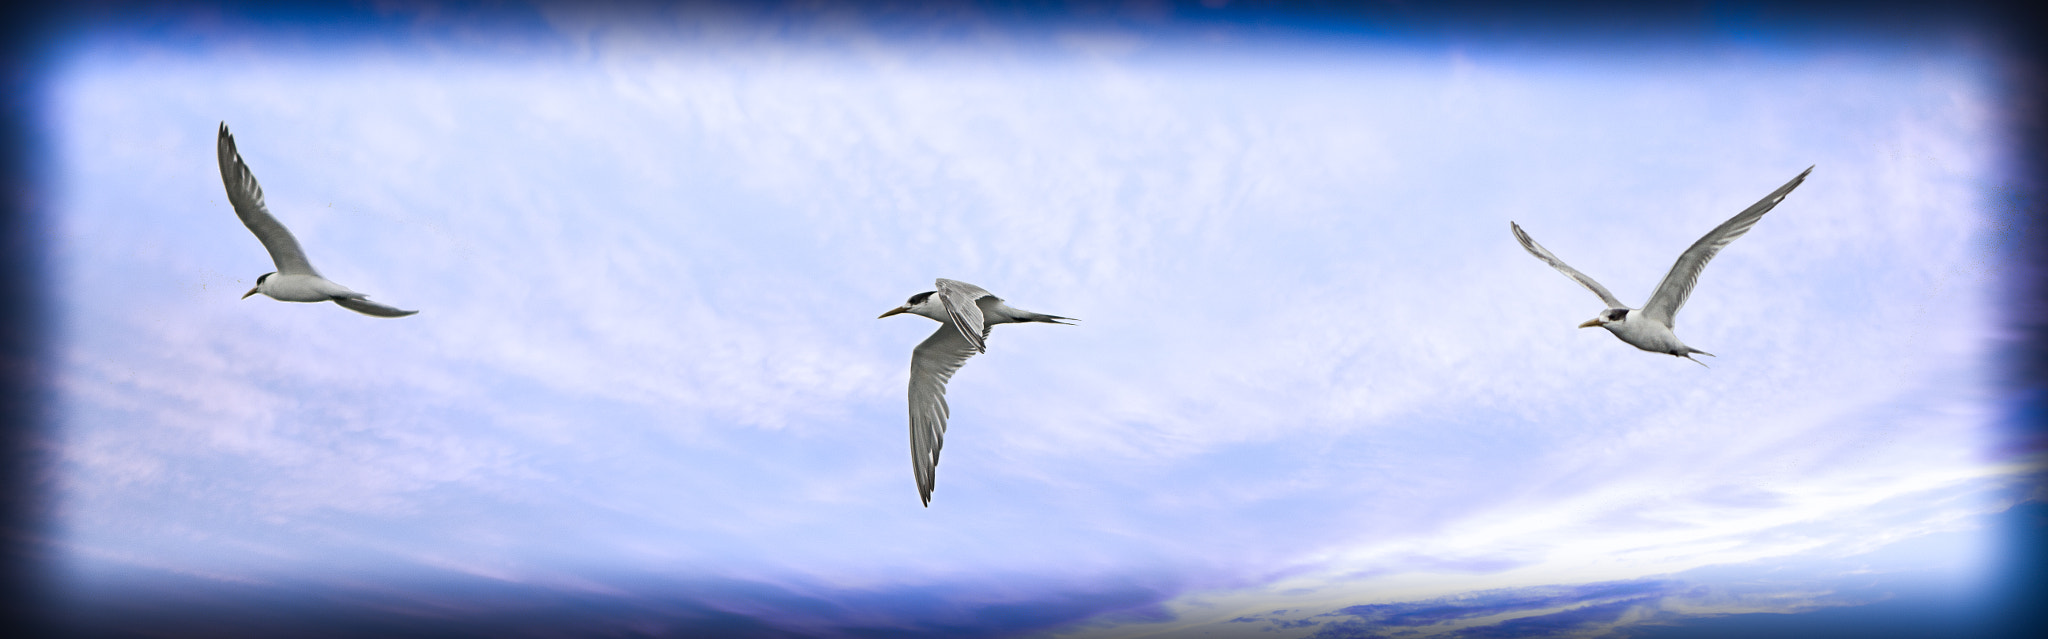 Photograph Passing Tern Panorama by Peter Knol on 500px